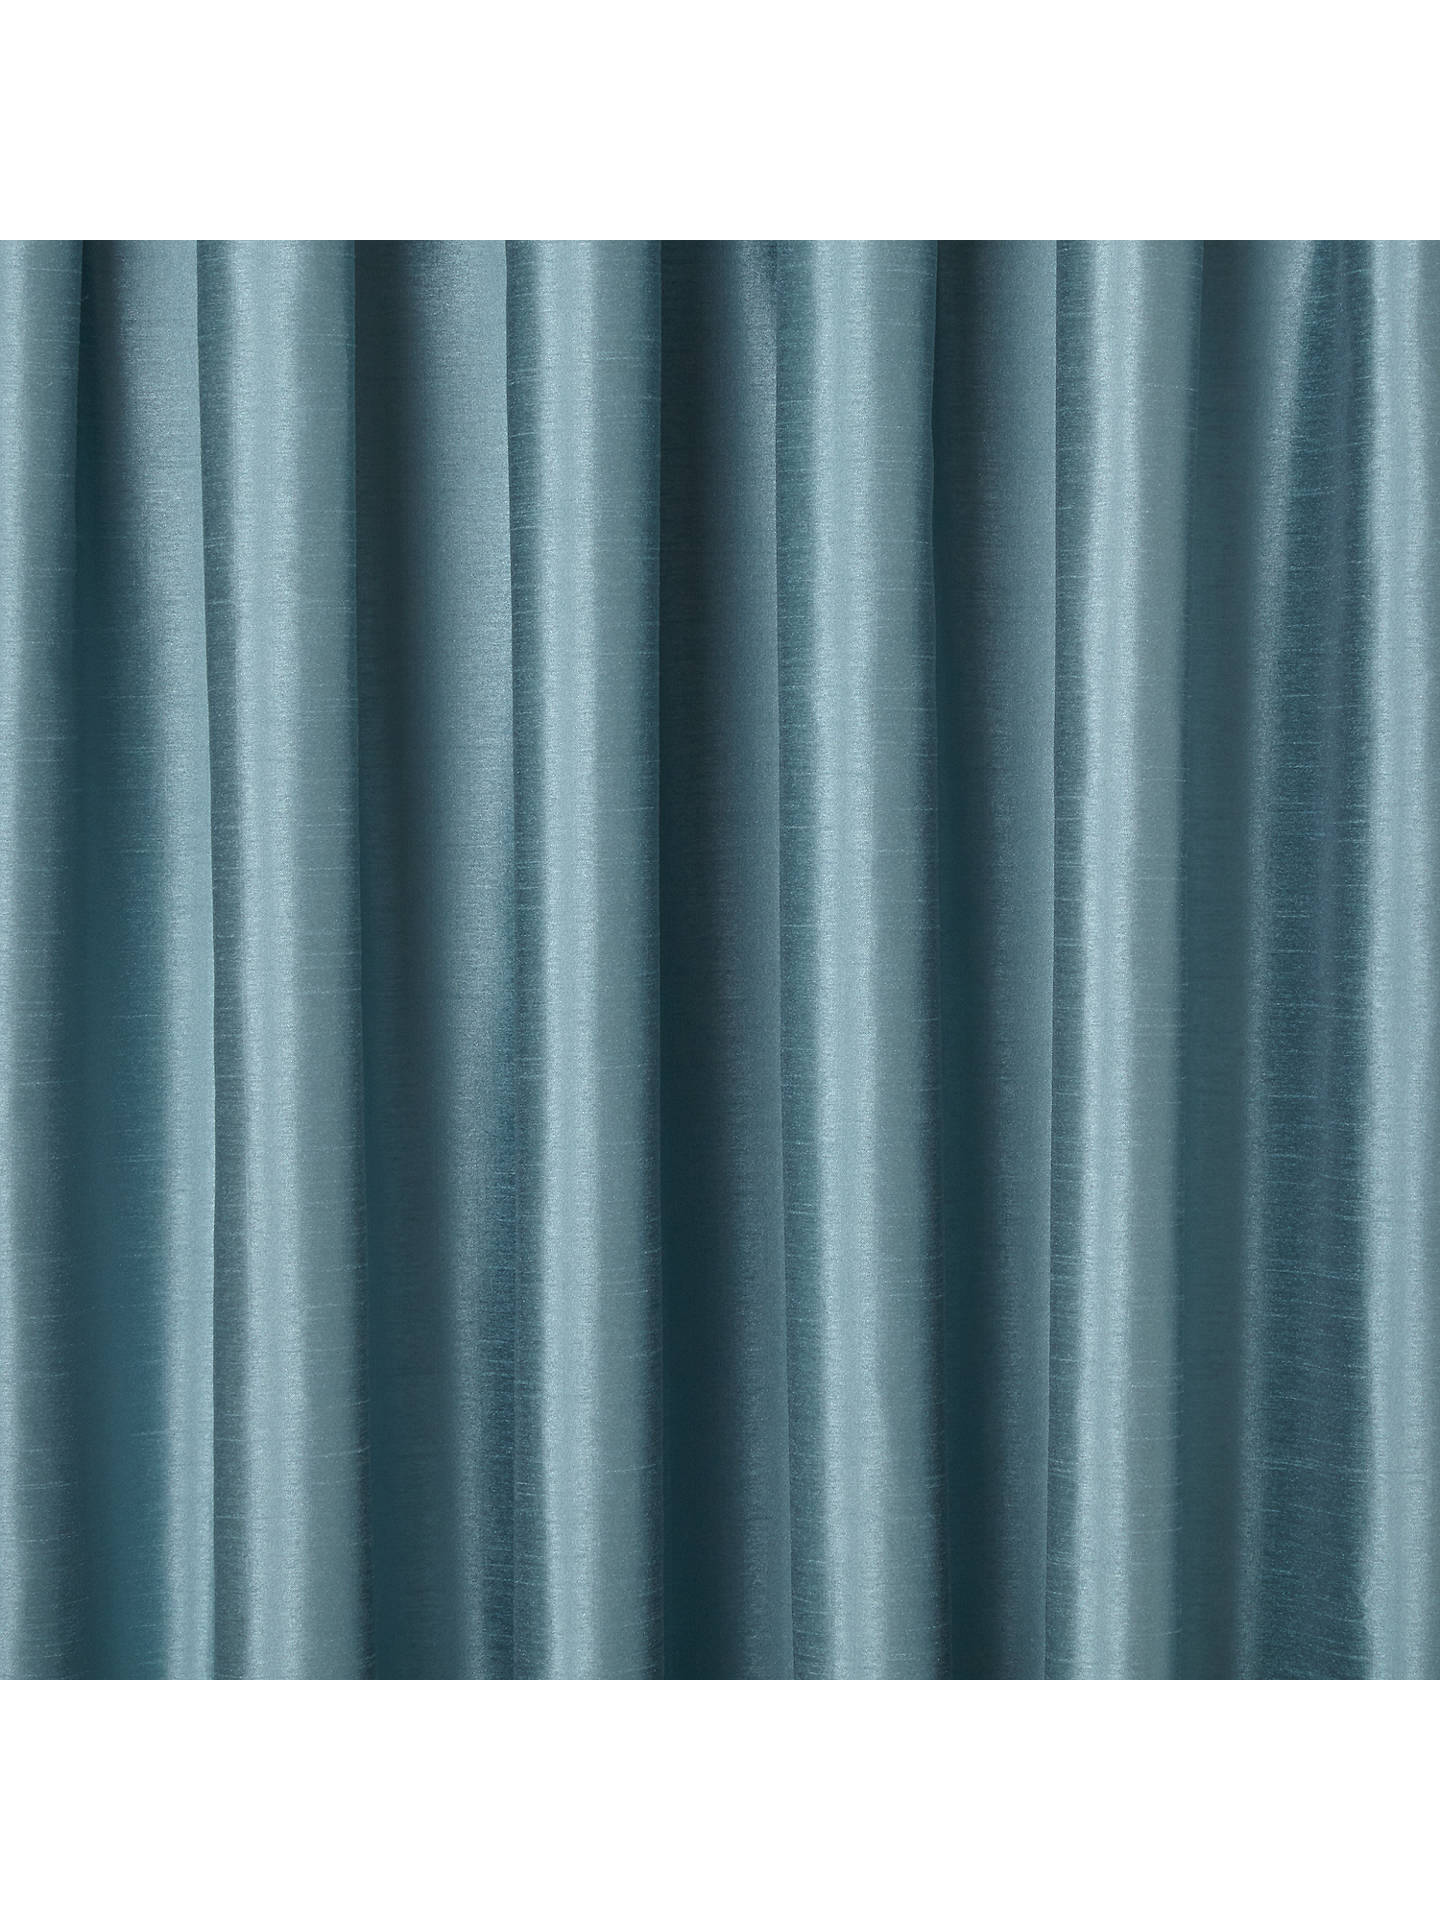 Buy John Lewis & Partners Faux Silk Pair Blackout Lined Pencil Pleat Curtains, Duck Egg, W167 x Drop 137cm Online at johnlewis.com